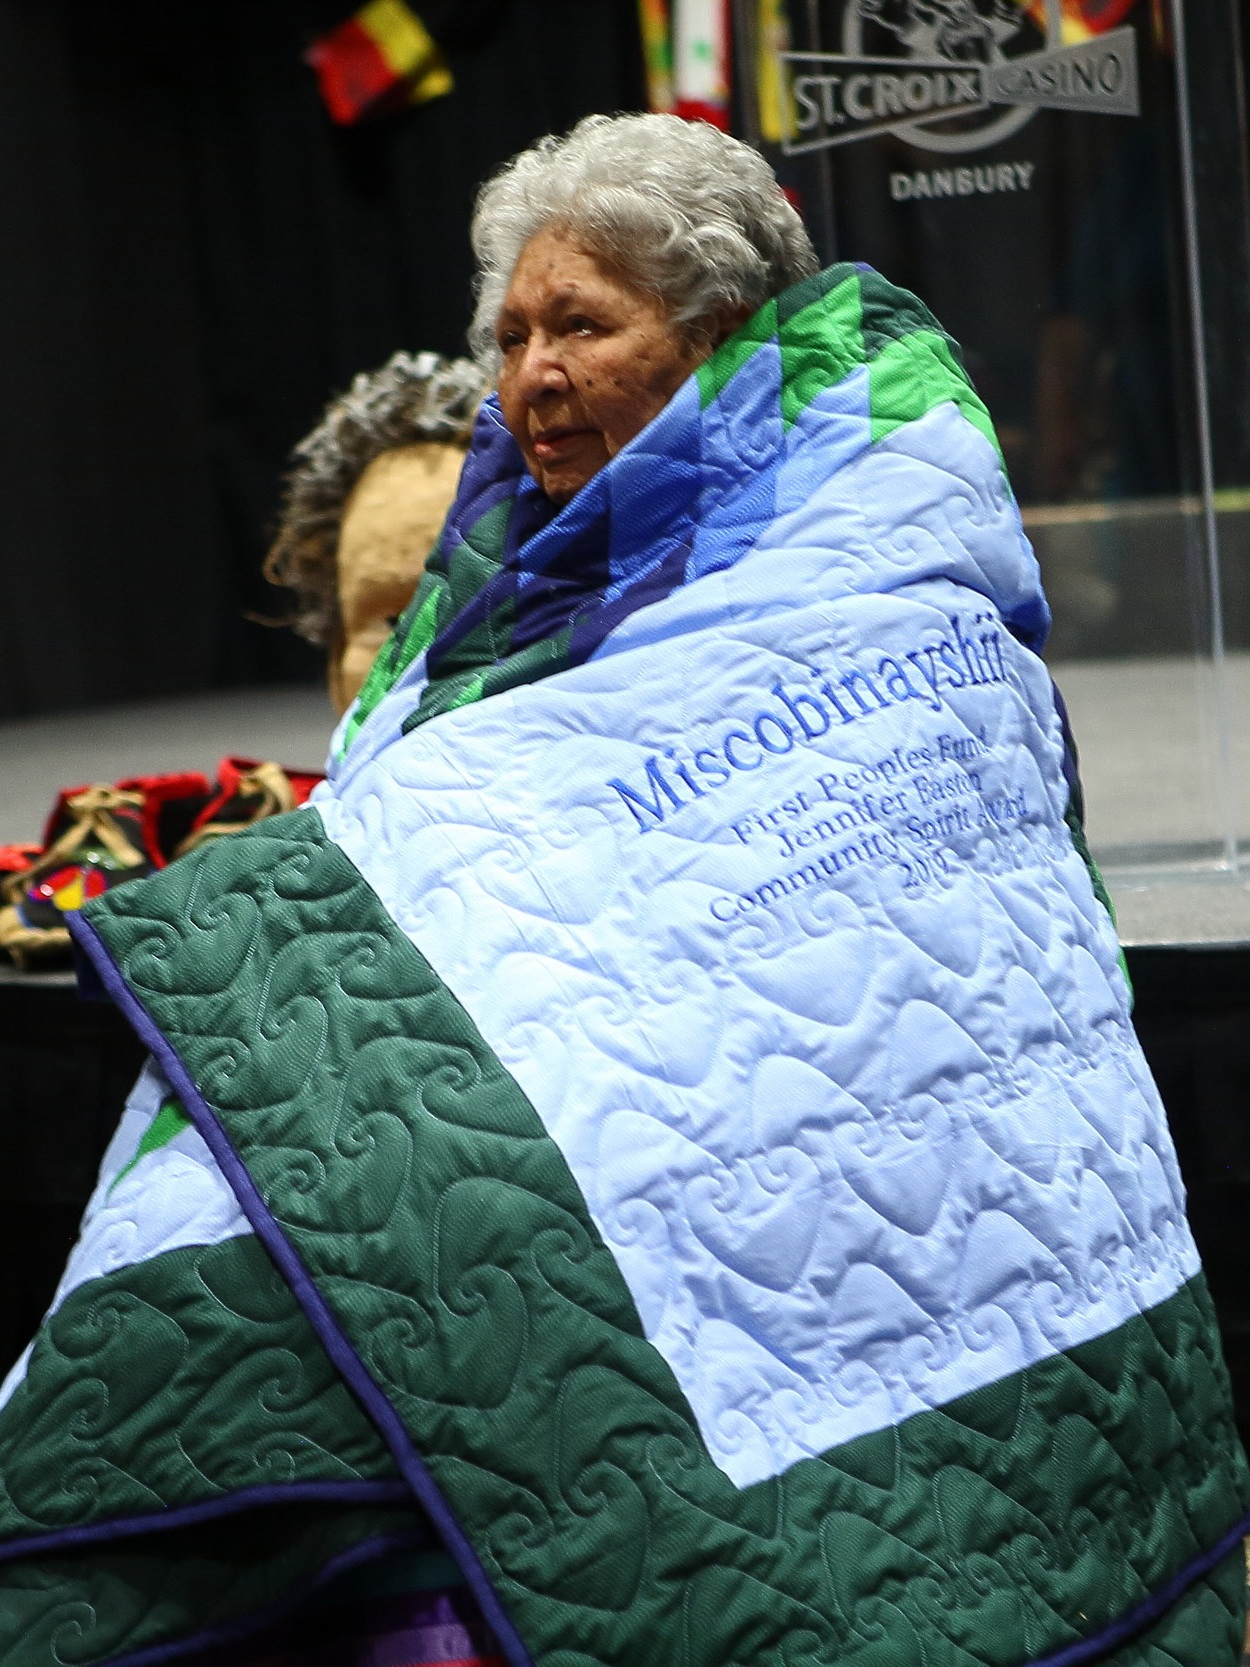 Miscobinayshii wrapped in her star quilt from FPF. Photo by Falls Portrait Art Studio.